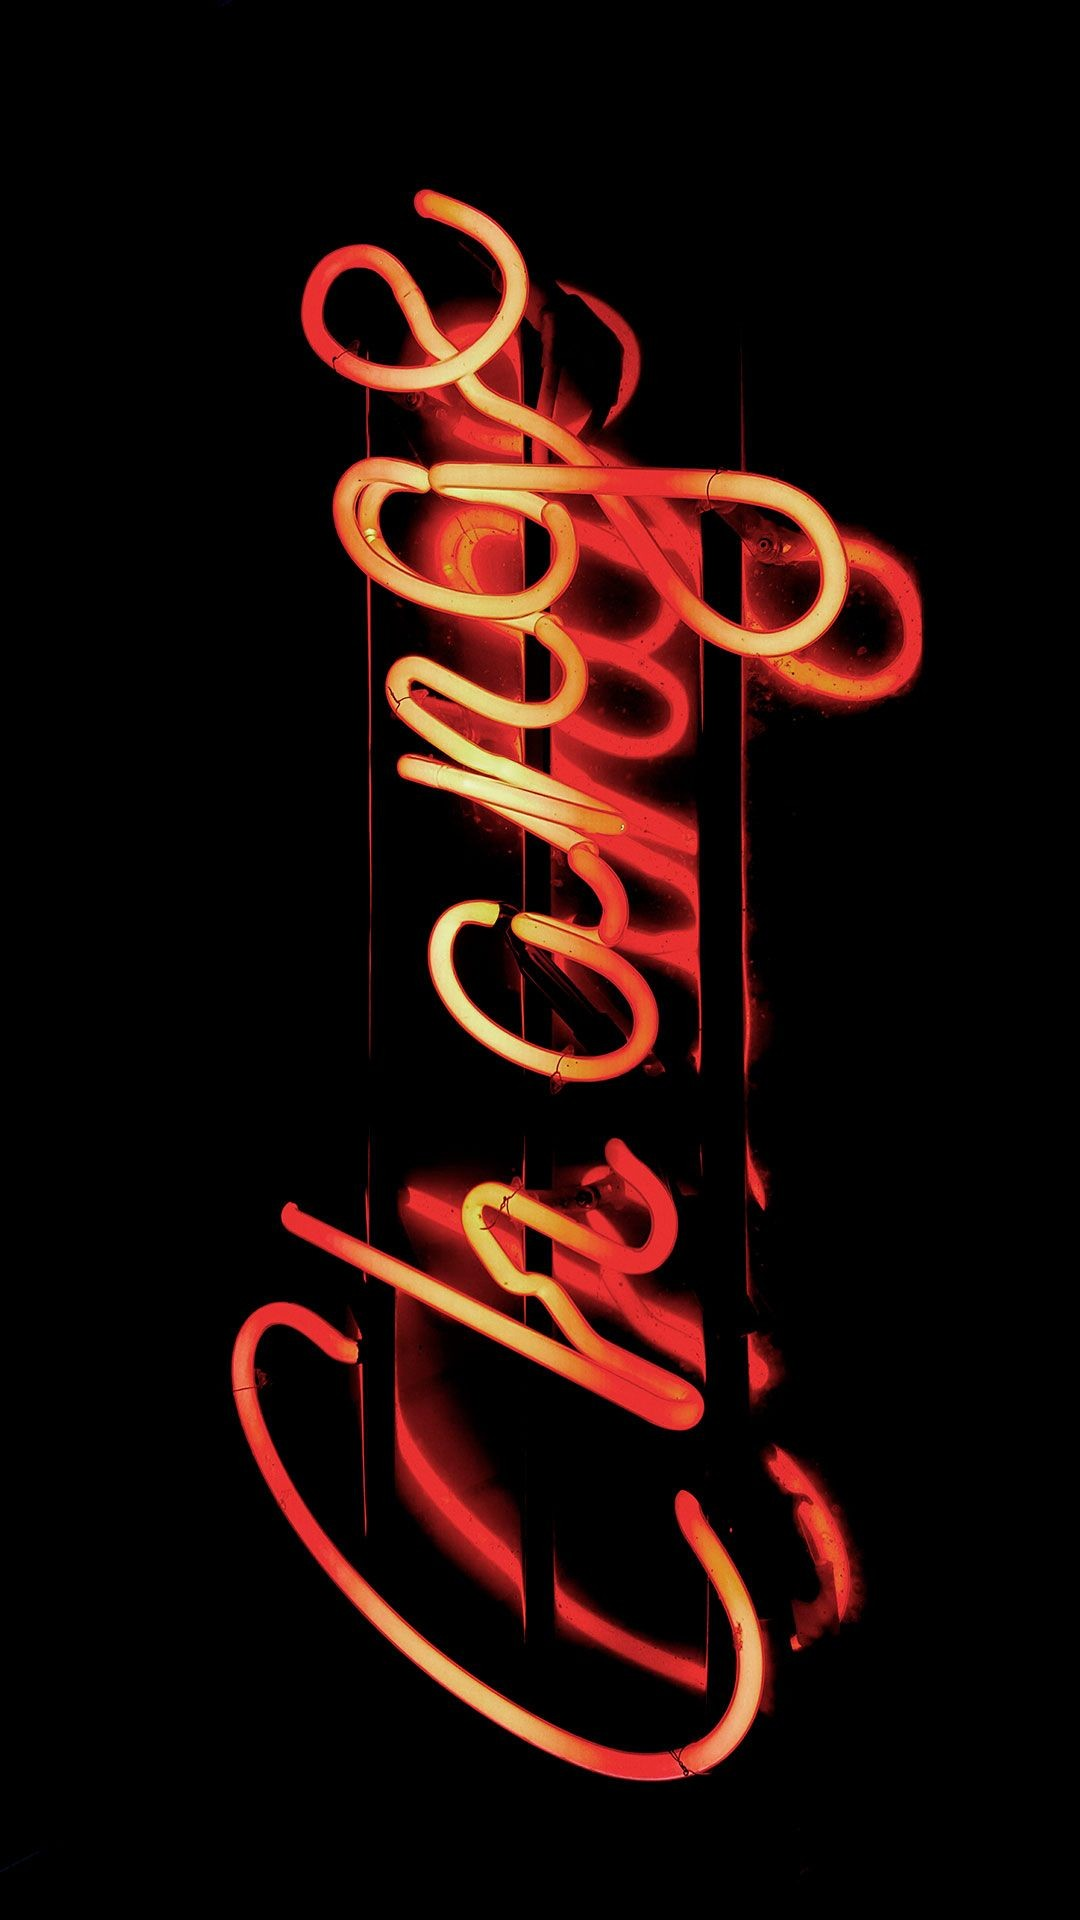 Res: 1080x1920, Neon Sign Wallpaper for iPhone X, 8, 7, 6 - Free Download on